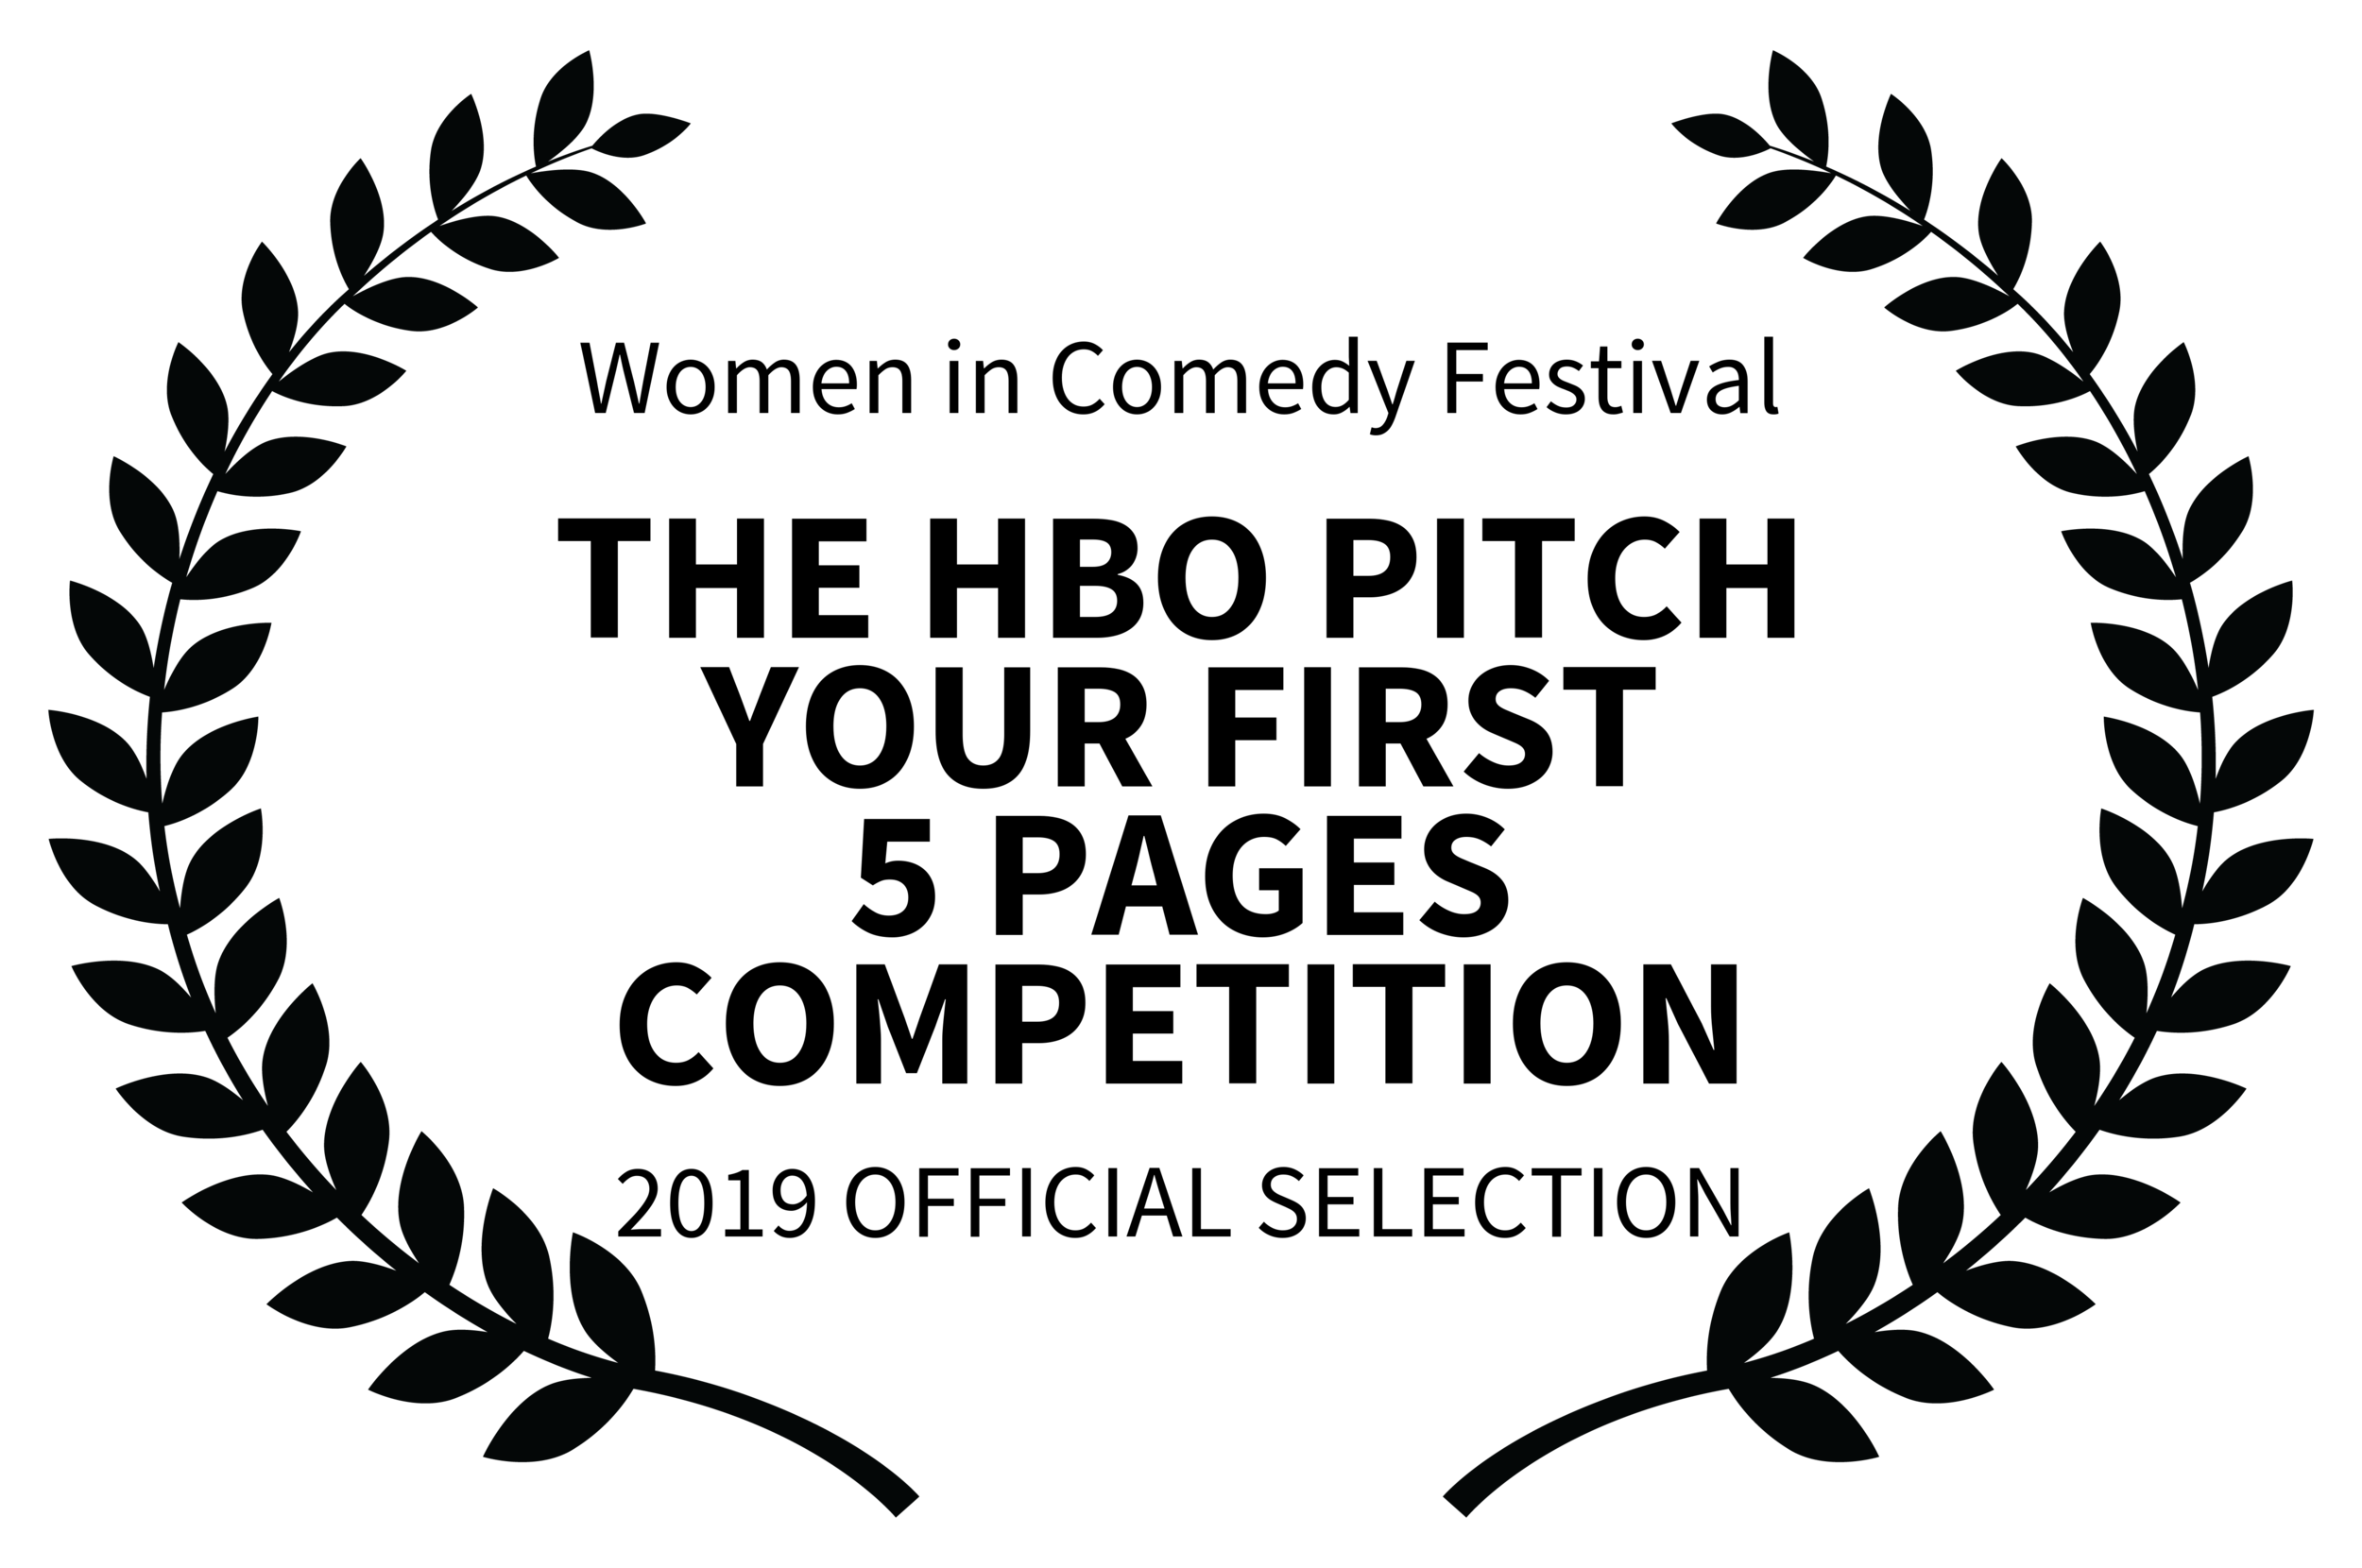 WomeninComedyFestival-THEHBOPITCHYOURFIRST5PAGESCOMPETITION-2019OFFICIALSELECTION.png